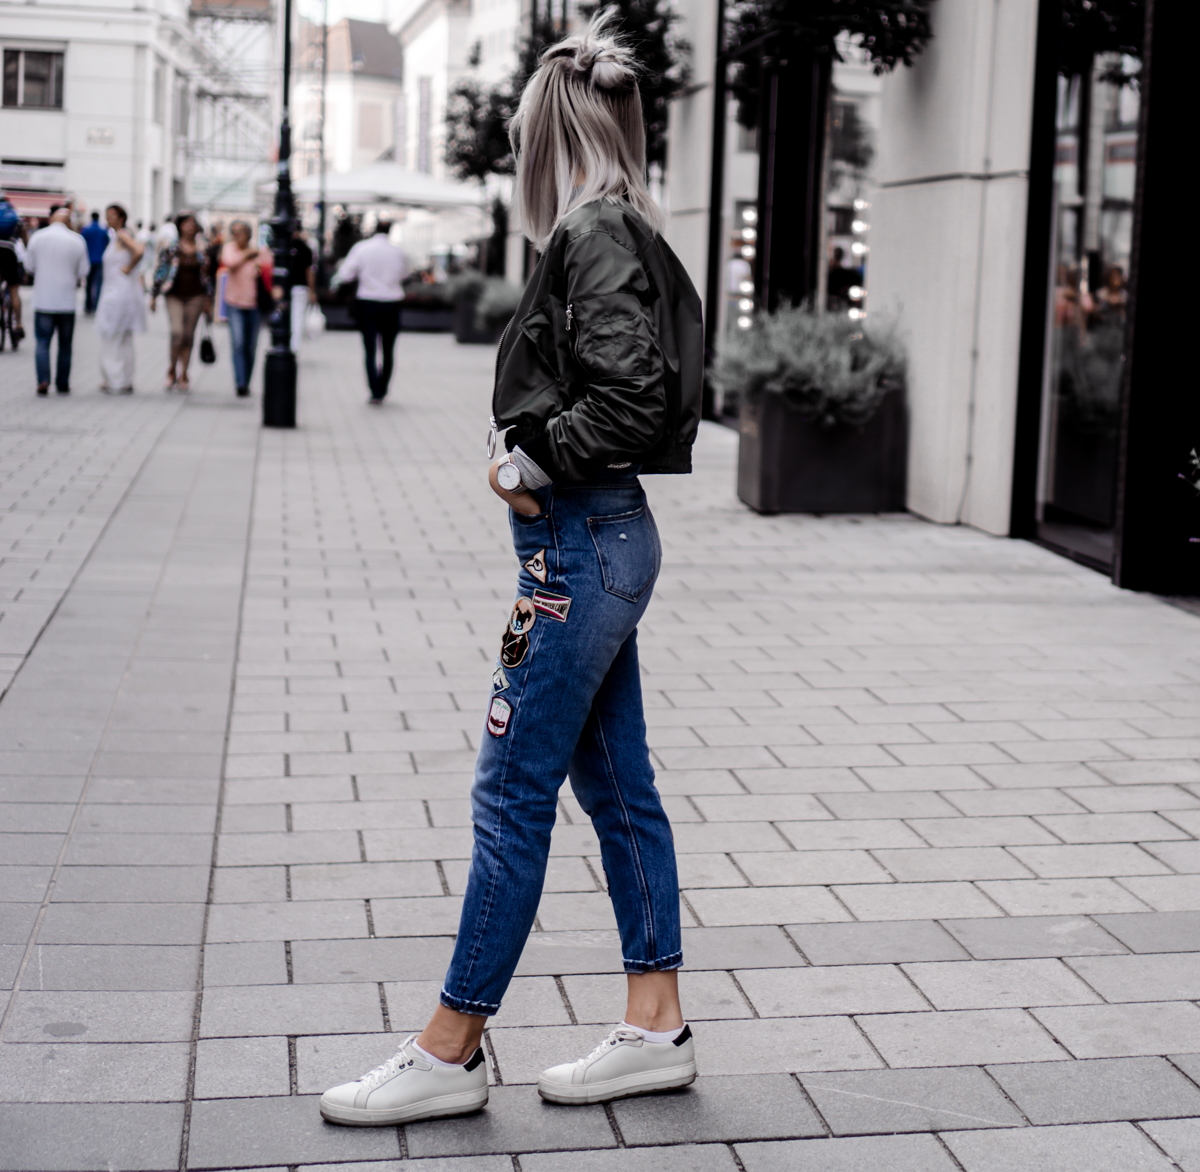 MOM-JEANS SNEAKERS u0026 BOMBER JACKET | The Cosmopolitas